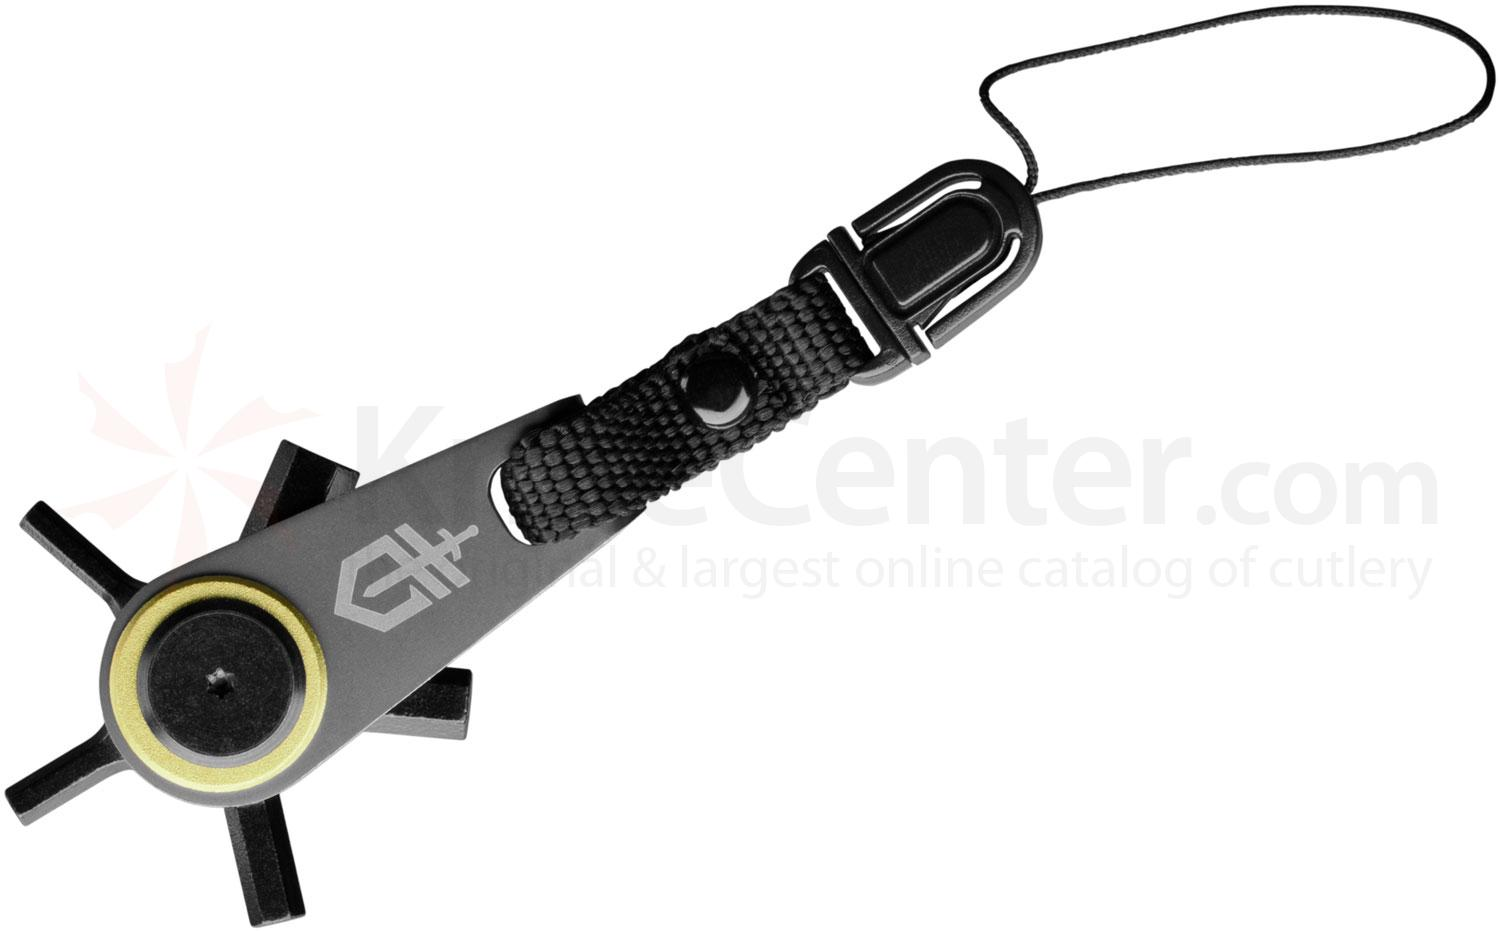 Gerber GDC Daily Carry Zip Hex Driver, 5 Metric Sizes, Mini Multi-Tool (31-001740)